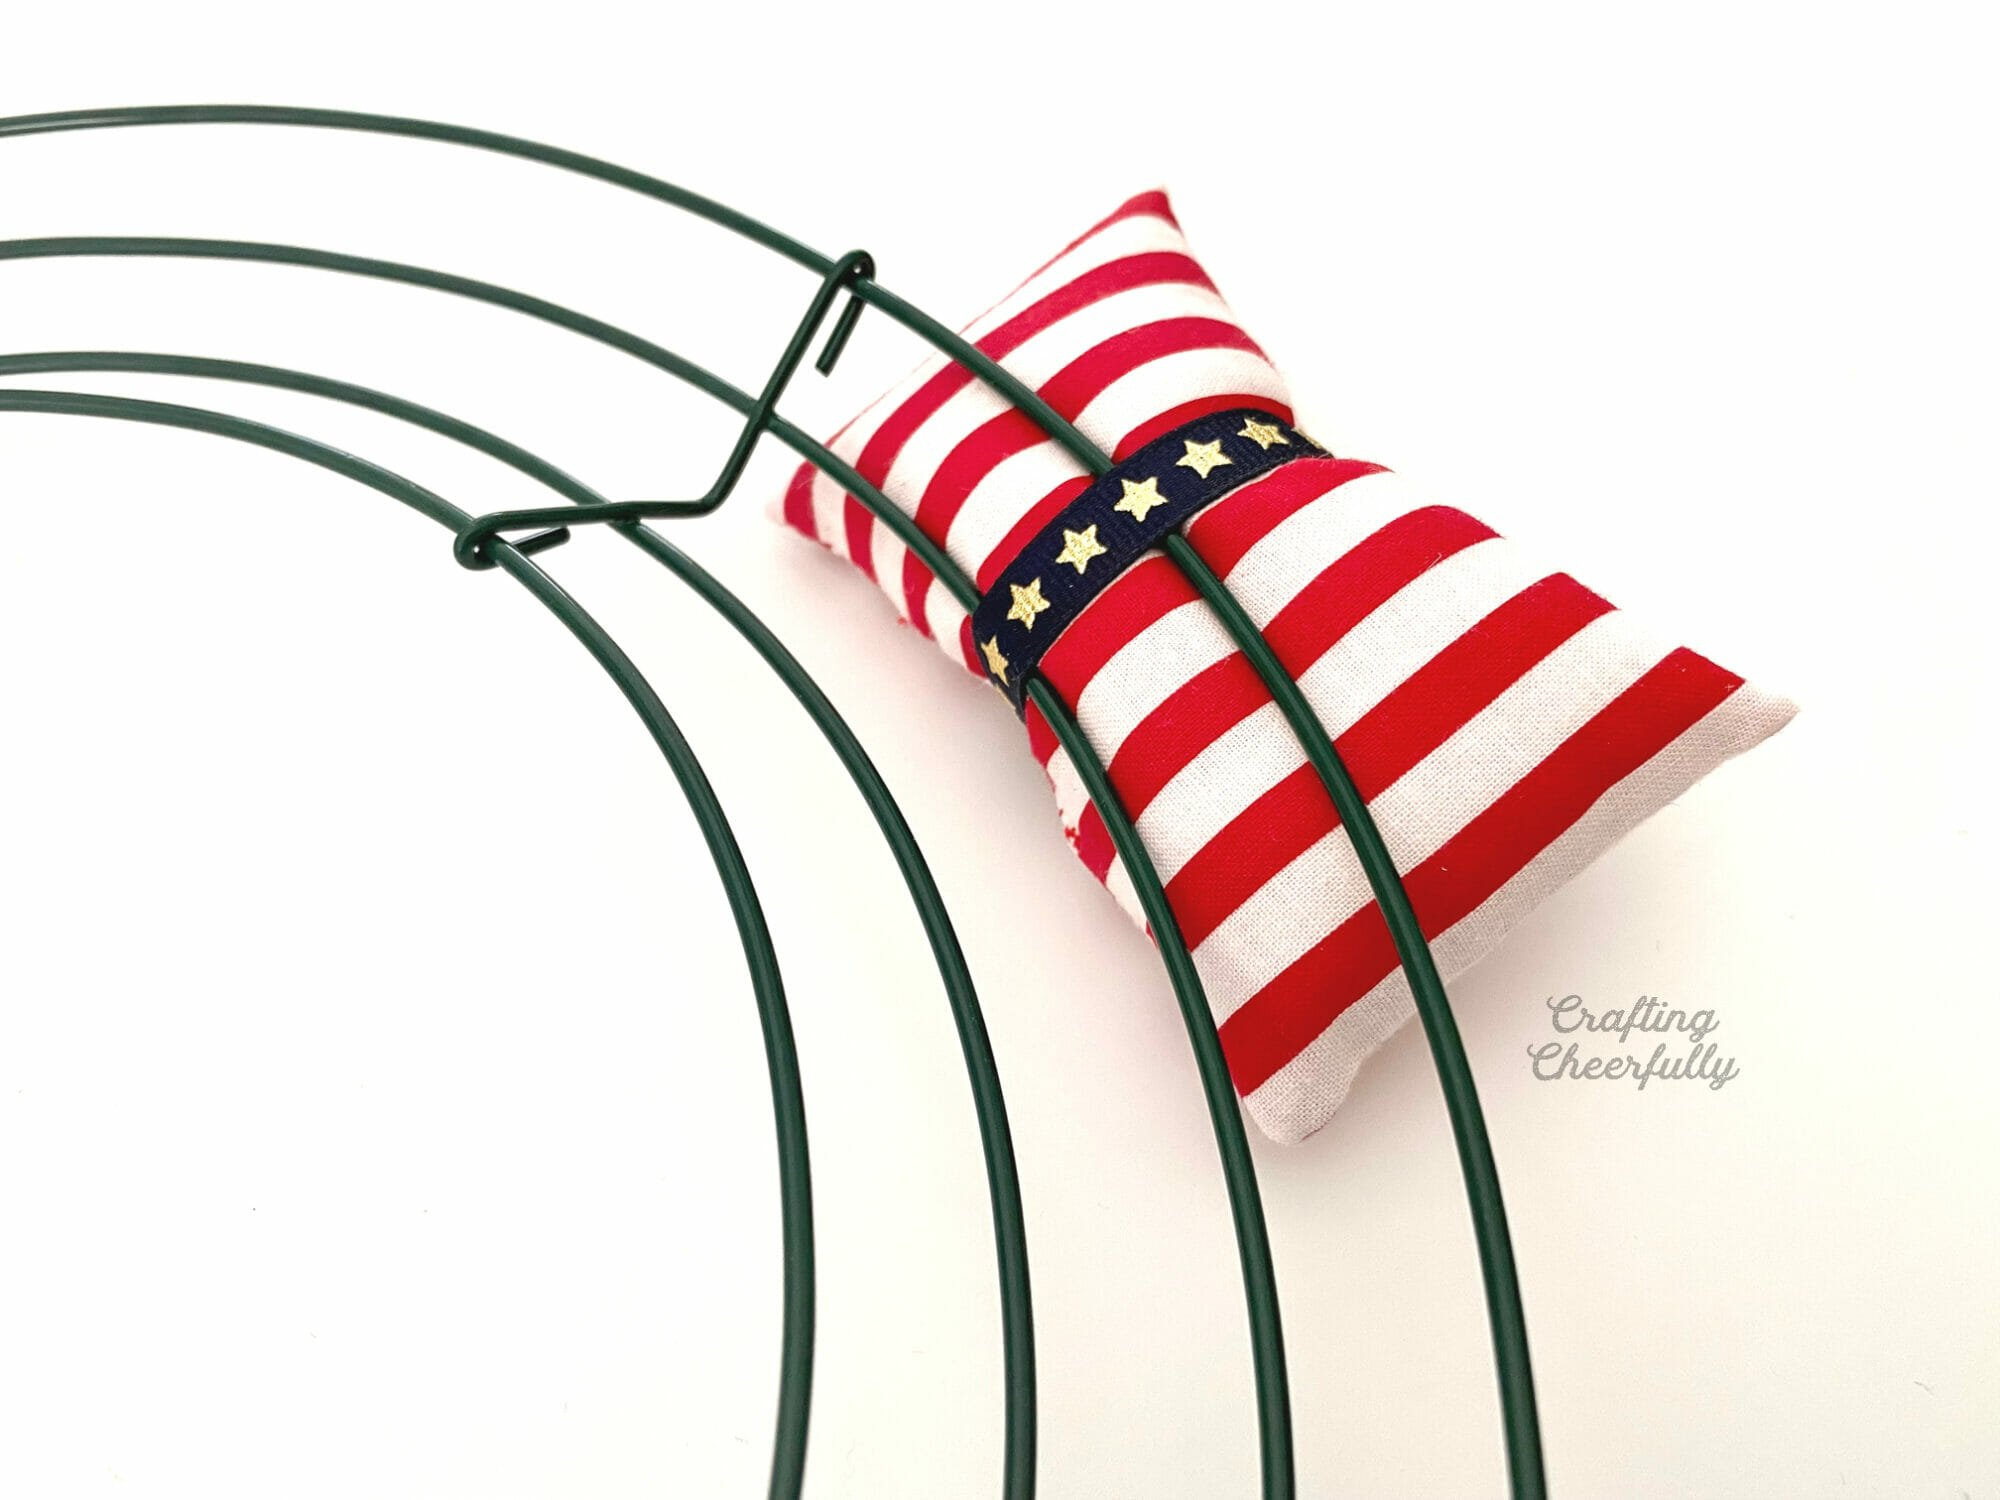 Red striped pillow tied to the metal wreath frame with blue star ribbon.